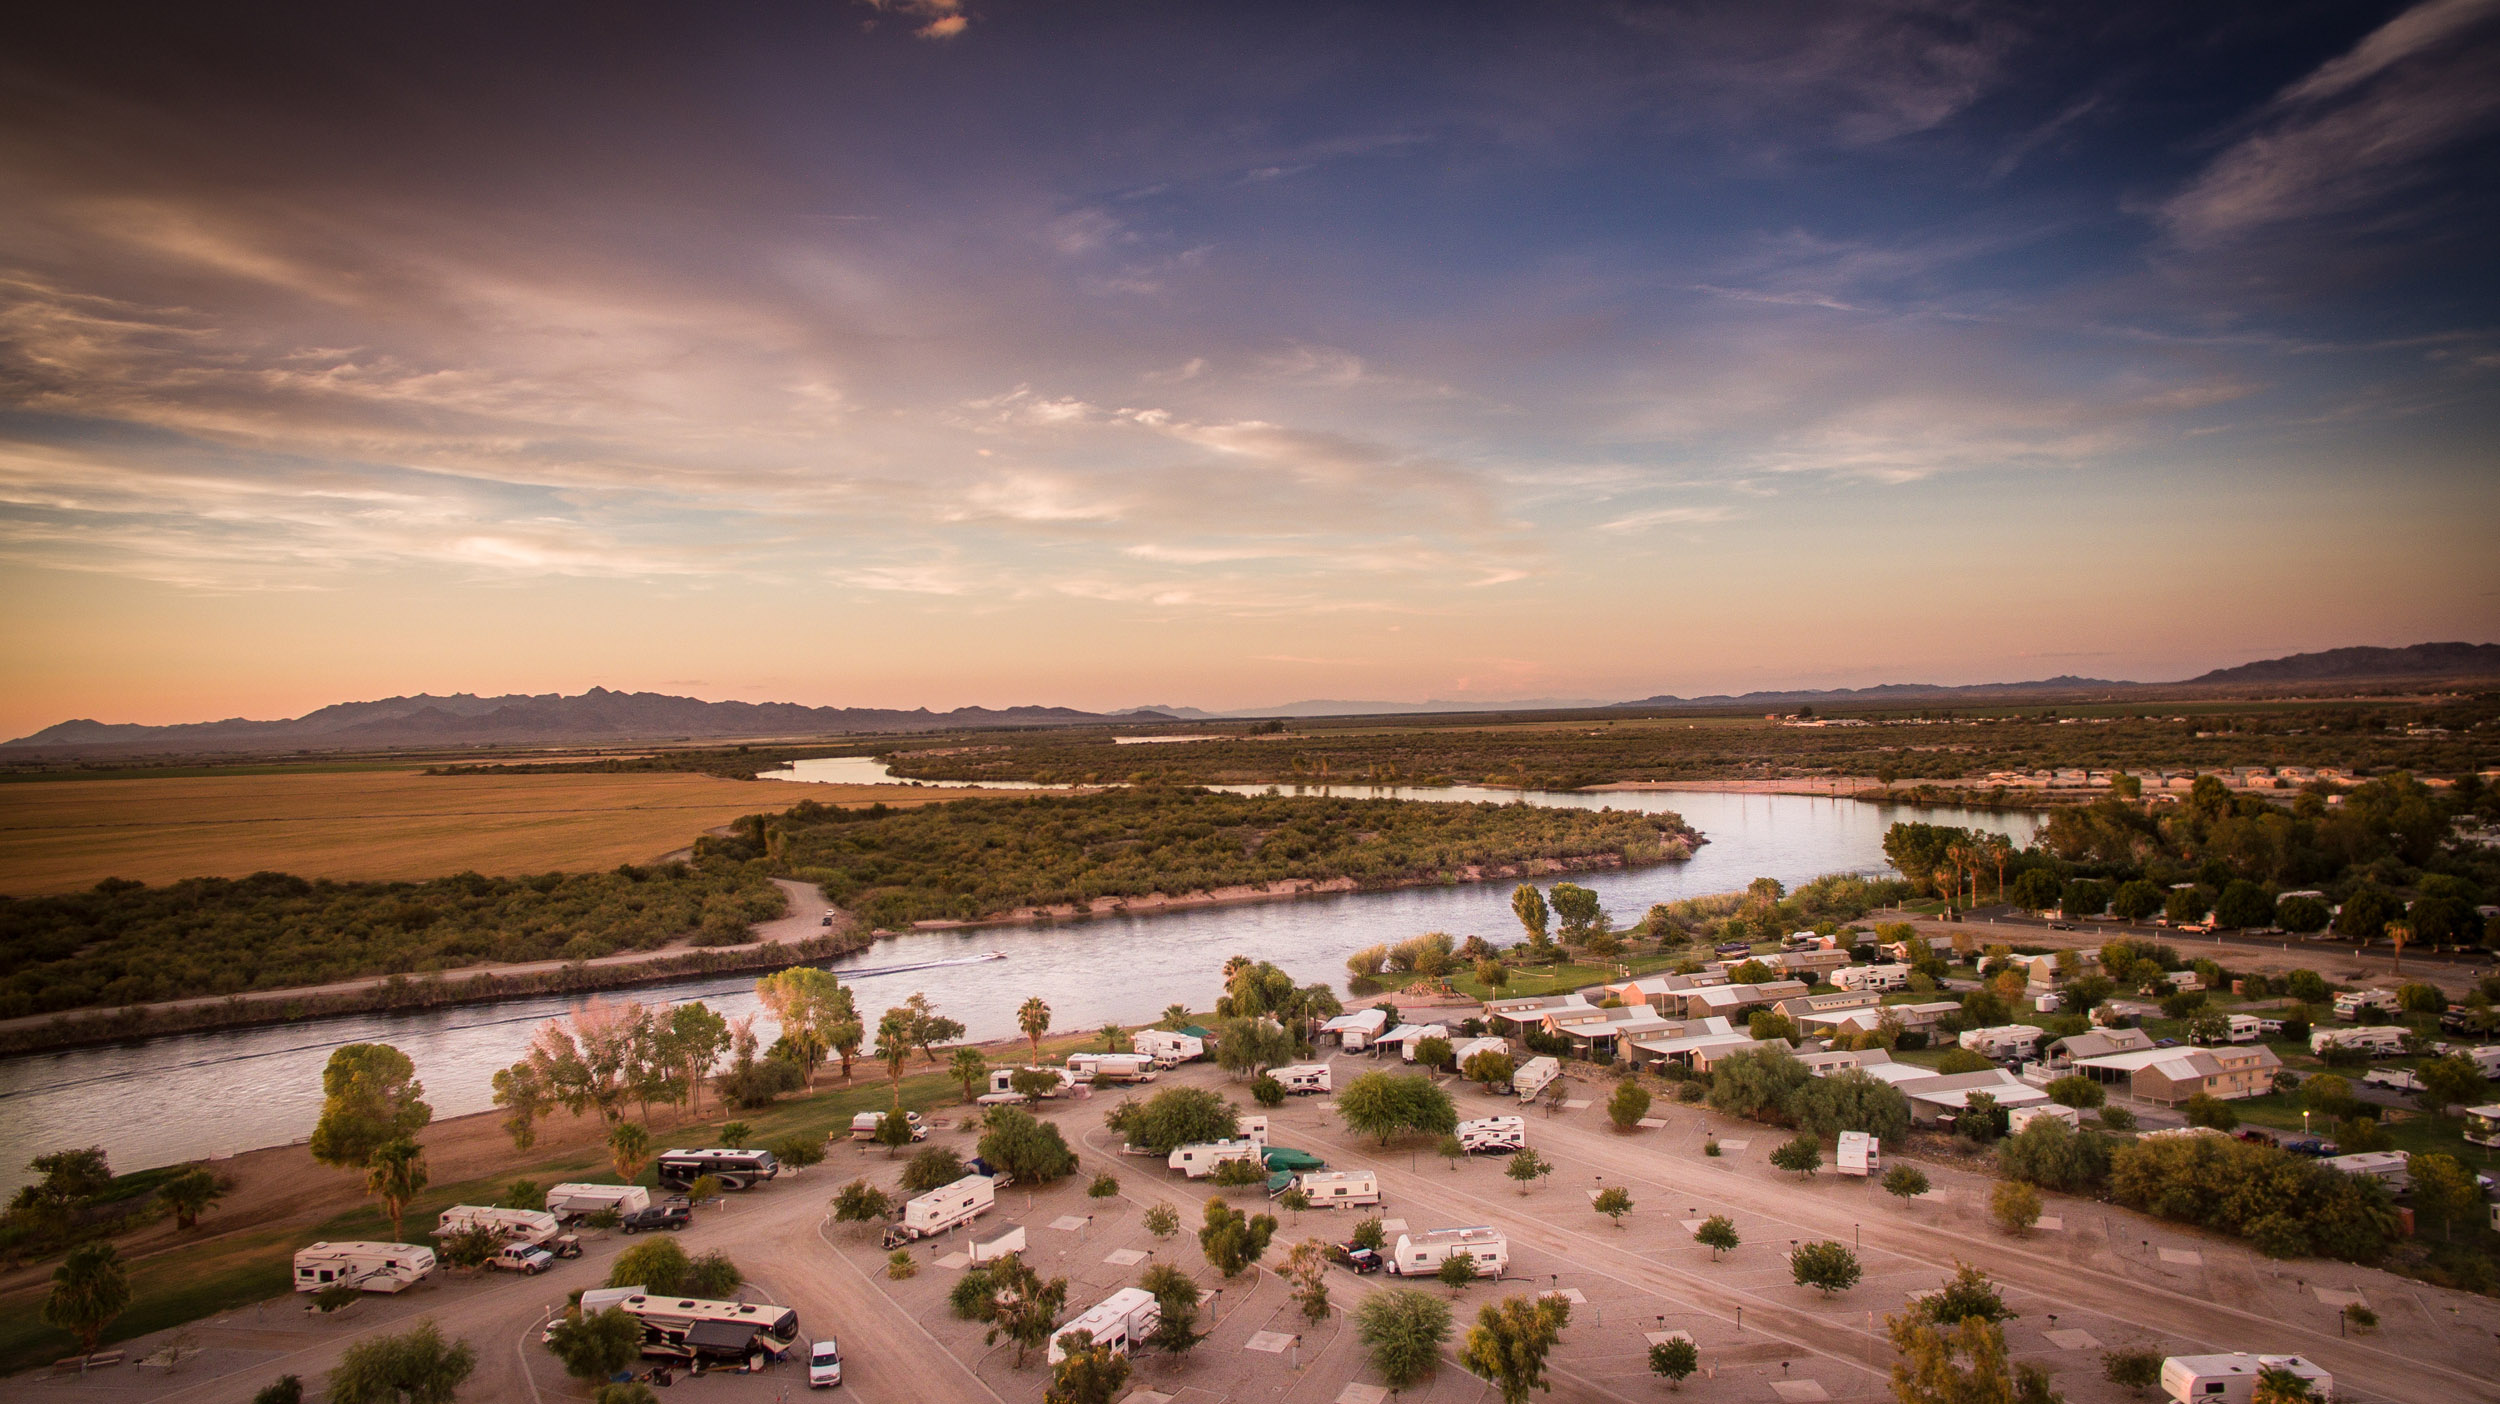 Resort Amenities - 20 minutes from Quartzsite1,000 ft. River beachFree WiFiBig rig friendlyHeated pools & spaGated communityHiking and ATV trails easily accessiblePet-friendlyBoat launchClubhouse, kitchen & meeting room